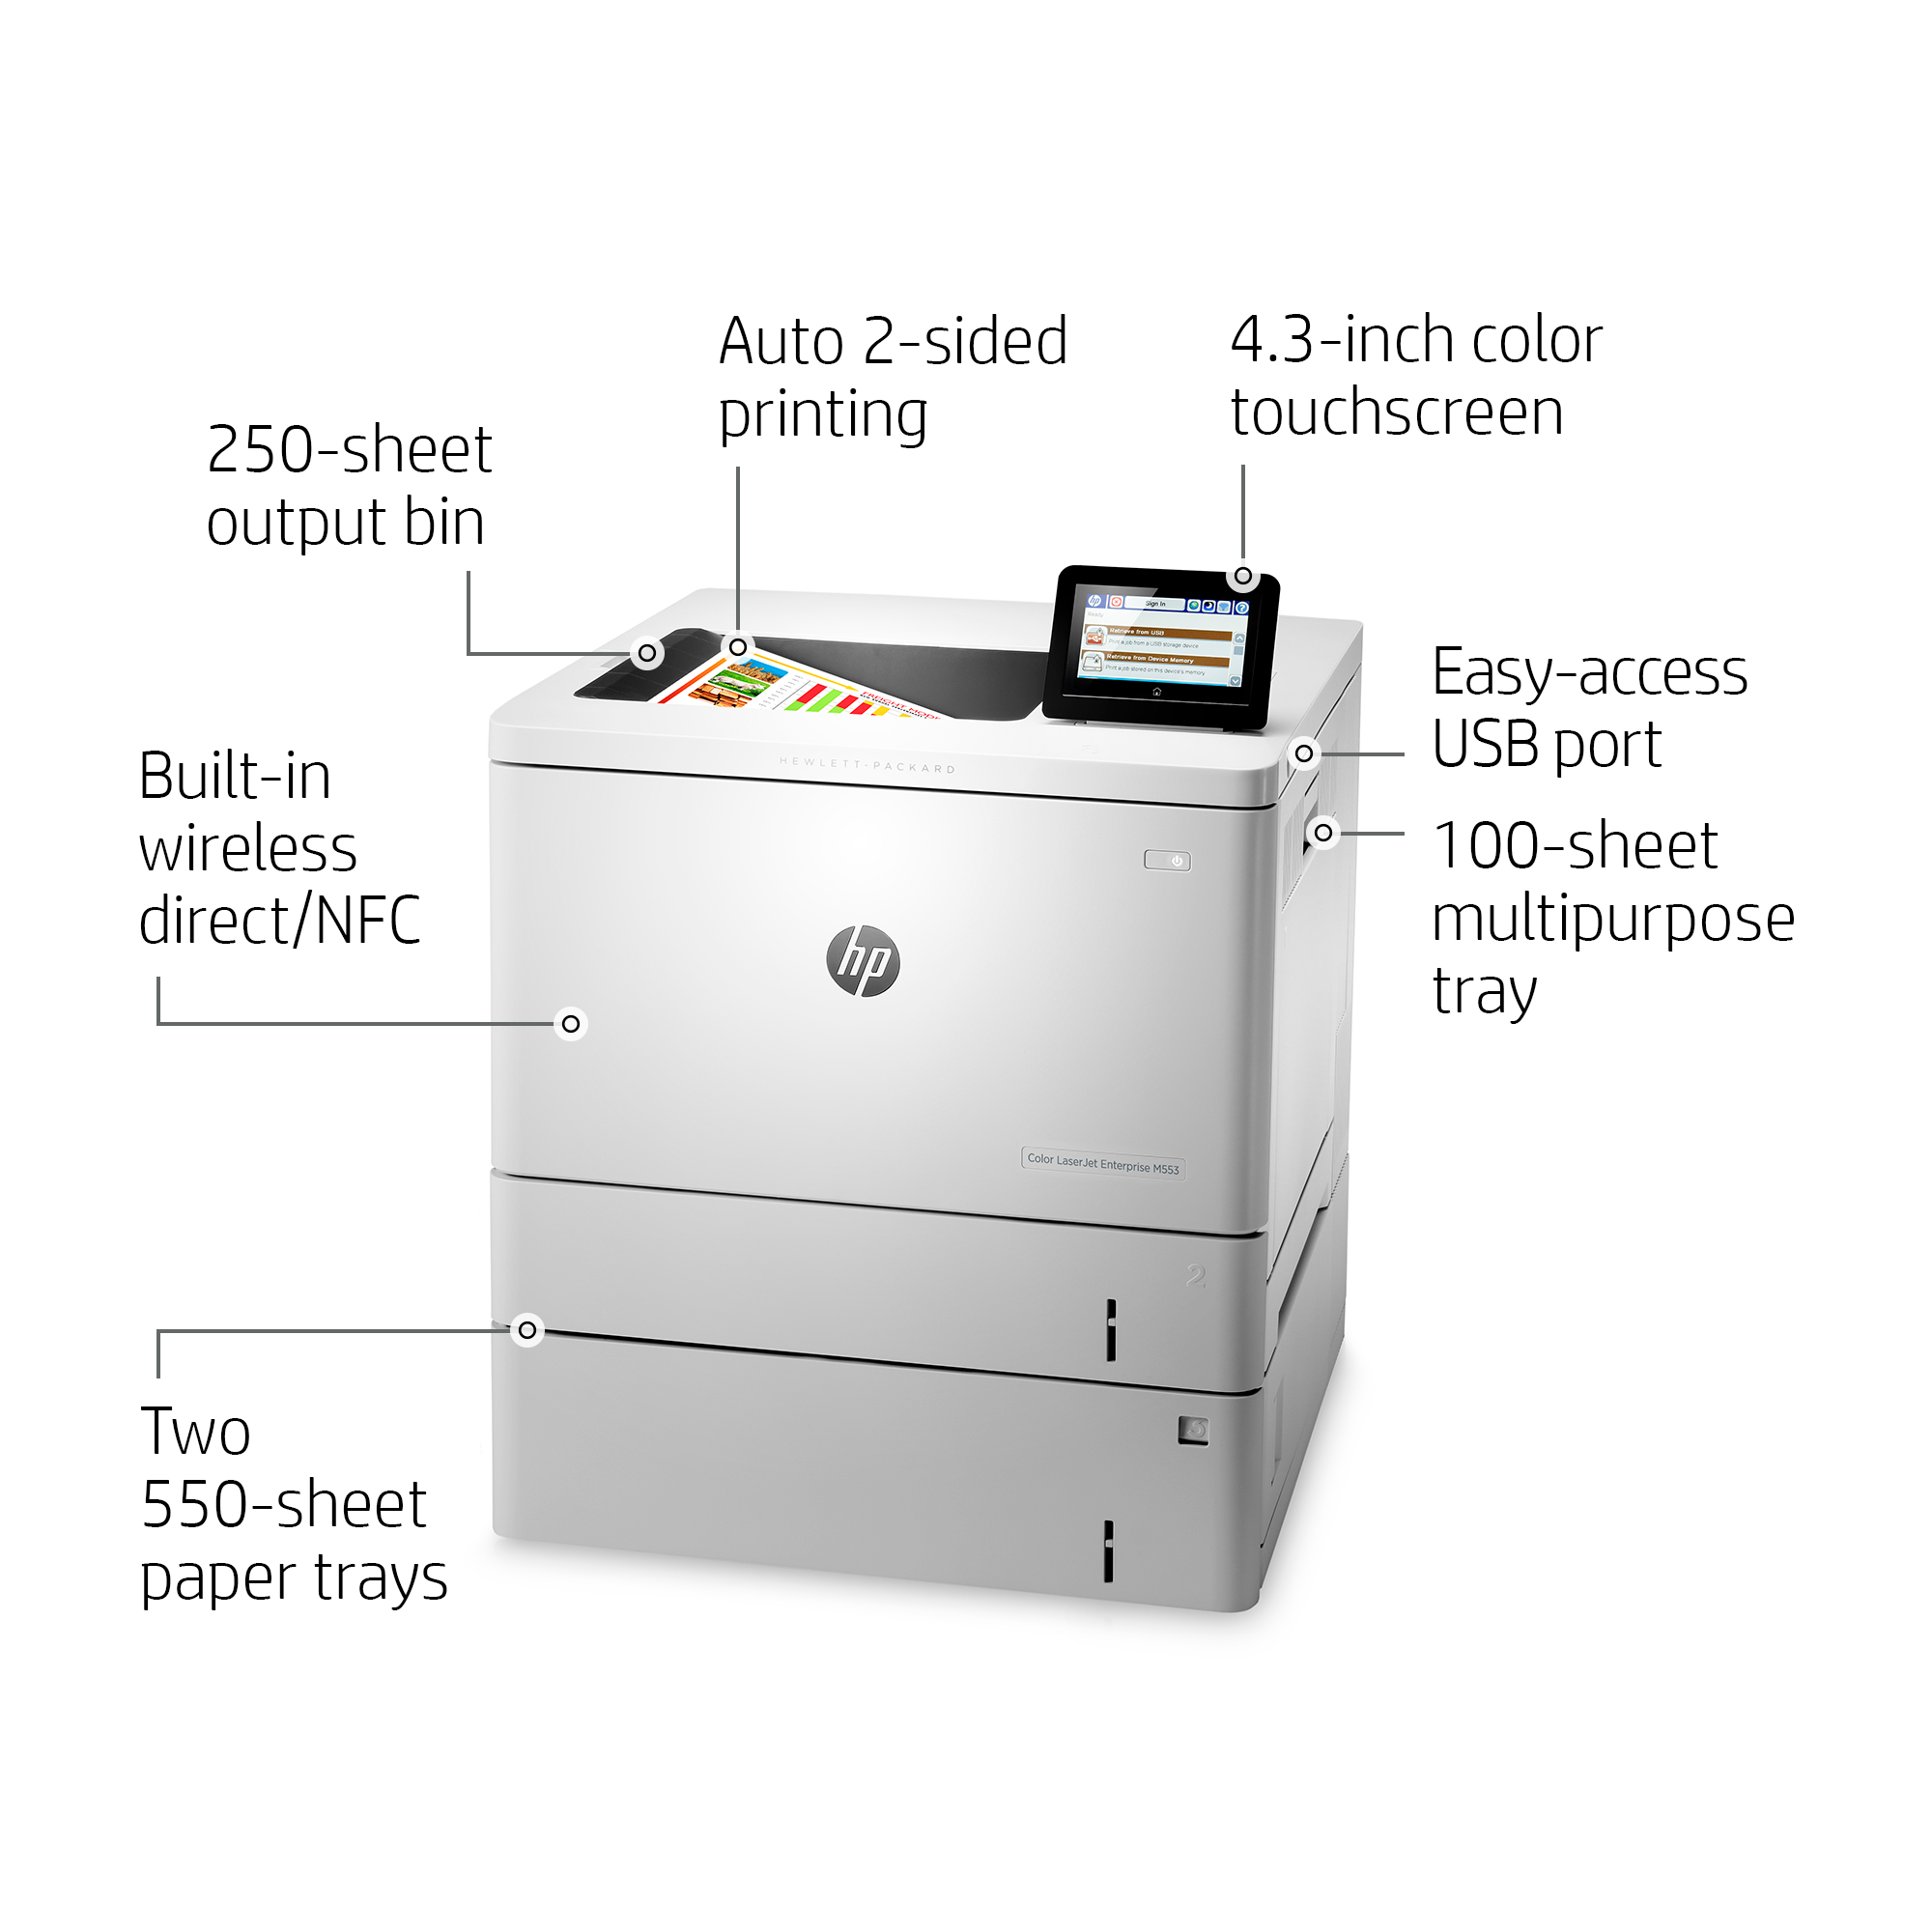 Product | HP Color LaserJet Enterprise M553x - printer - color - laser